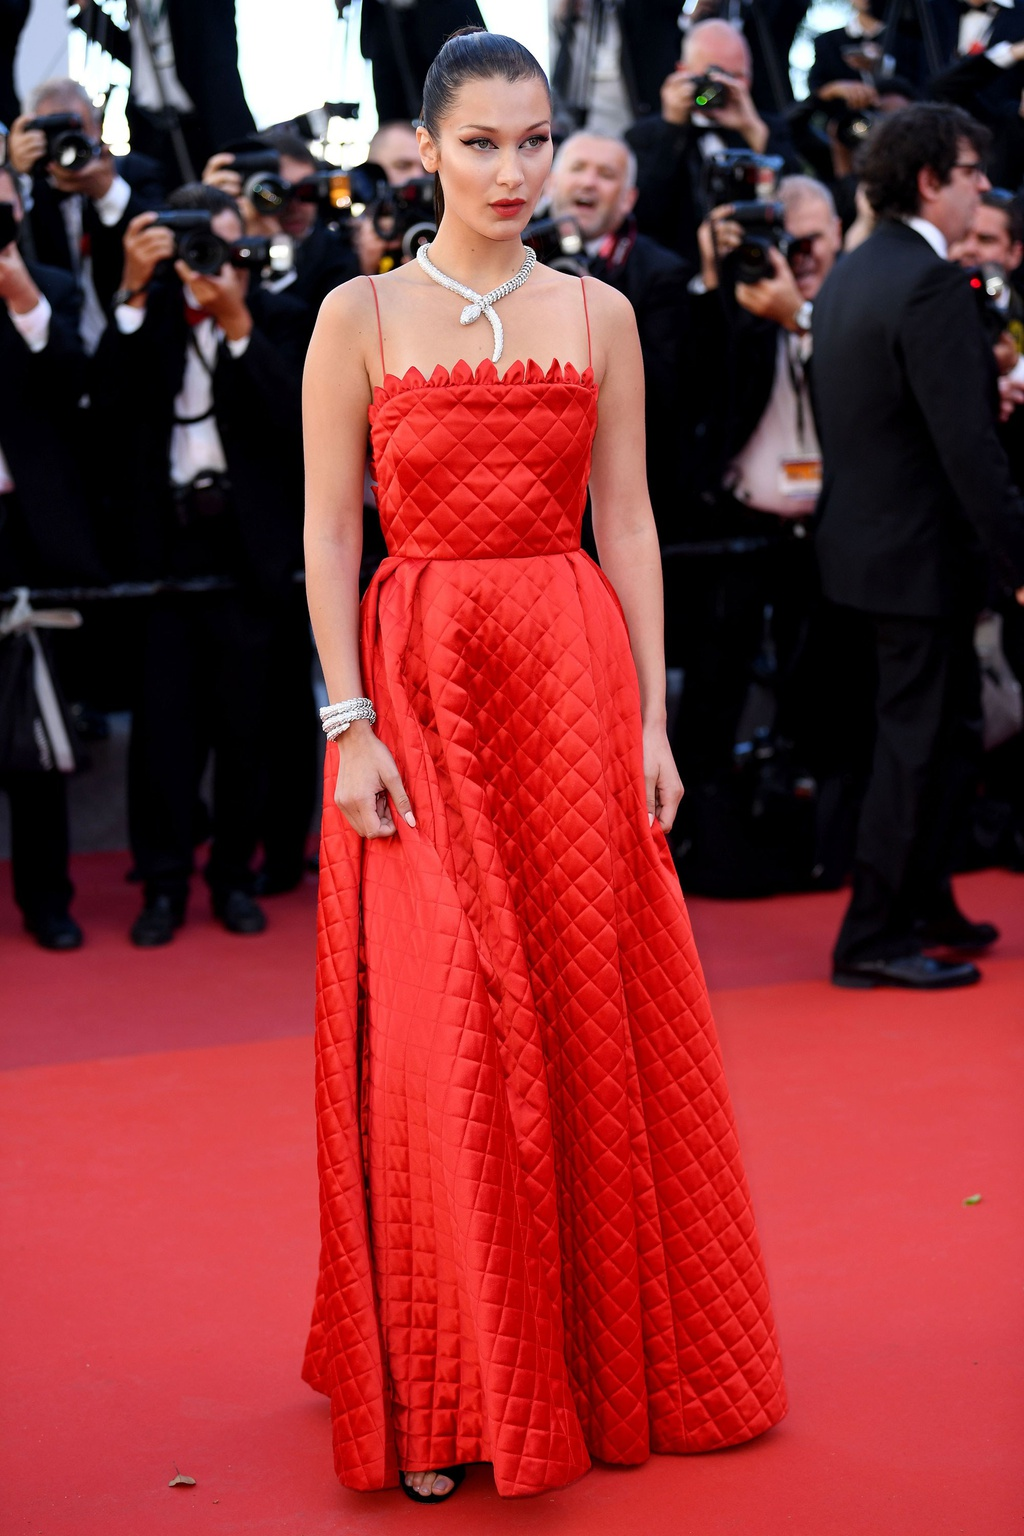 Ly Vu Xuan bat ngo tro thanh hien tuong tham do Cannes hinh anh 6